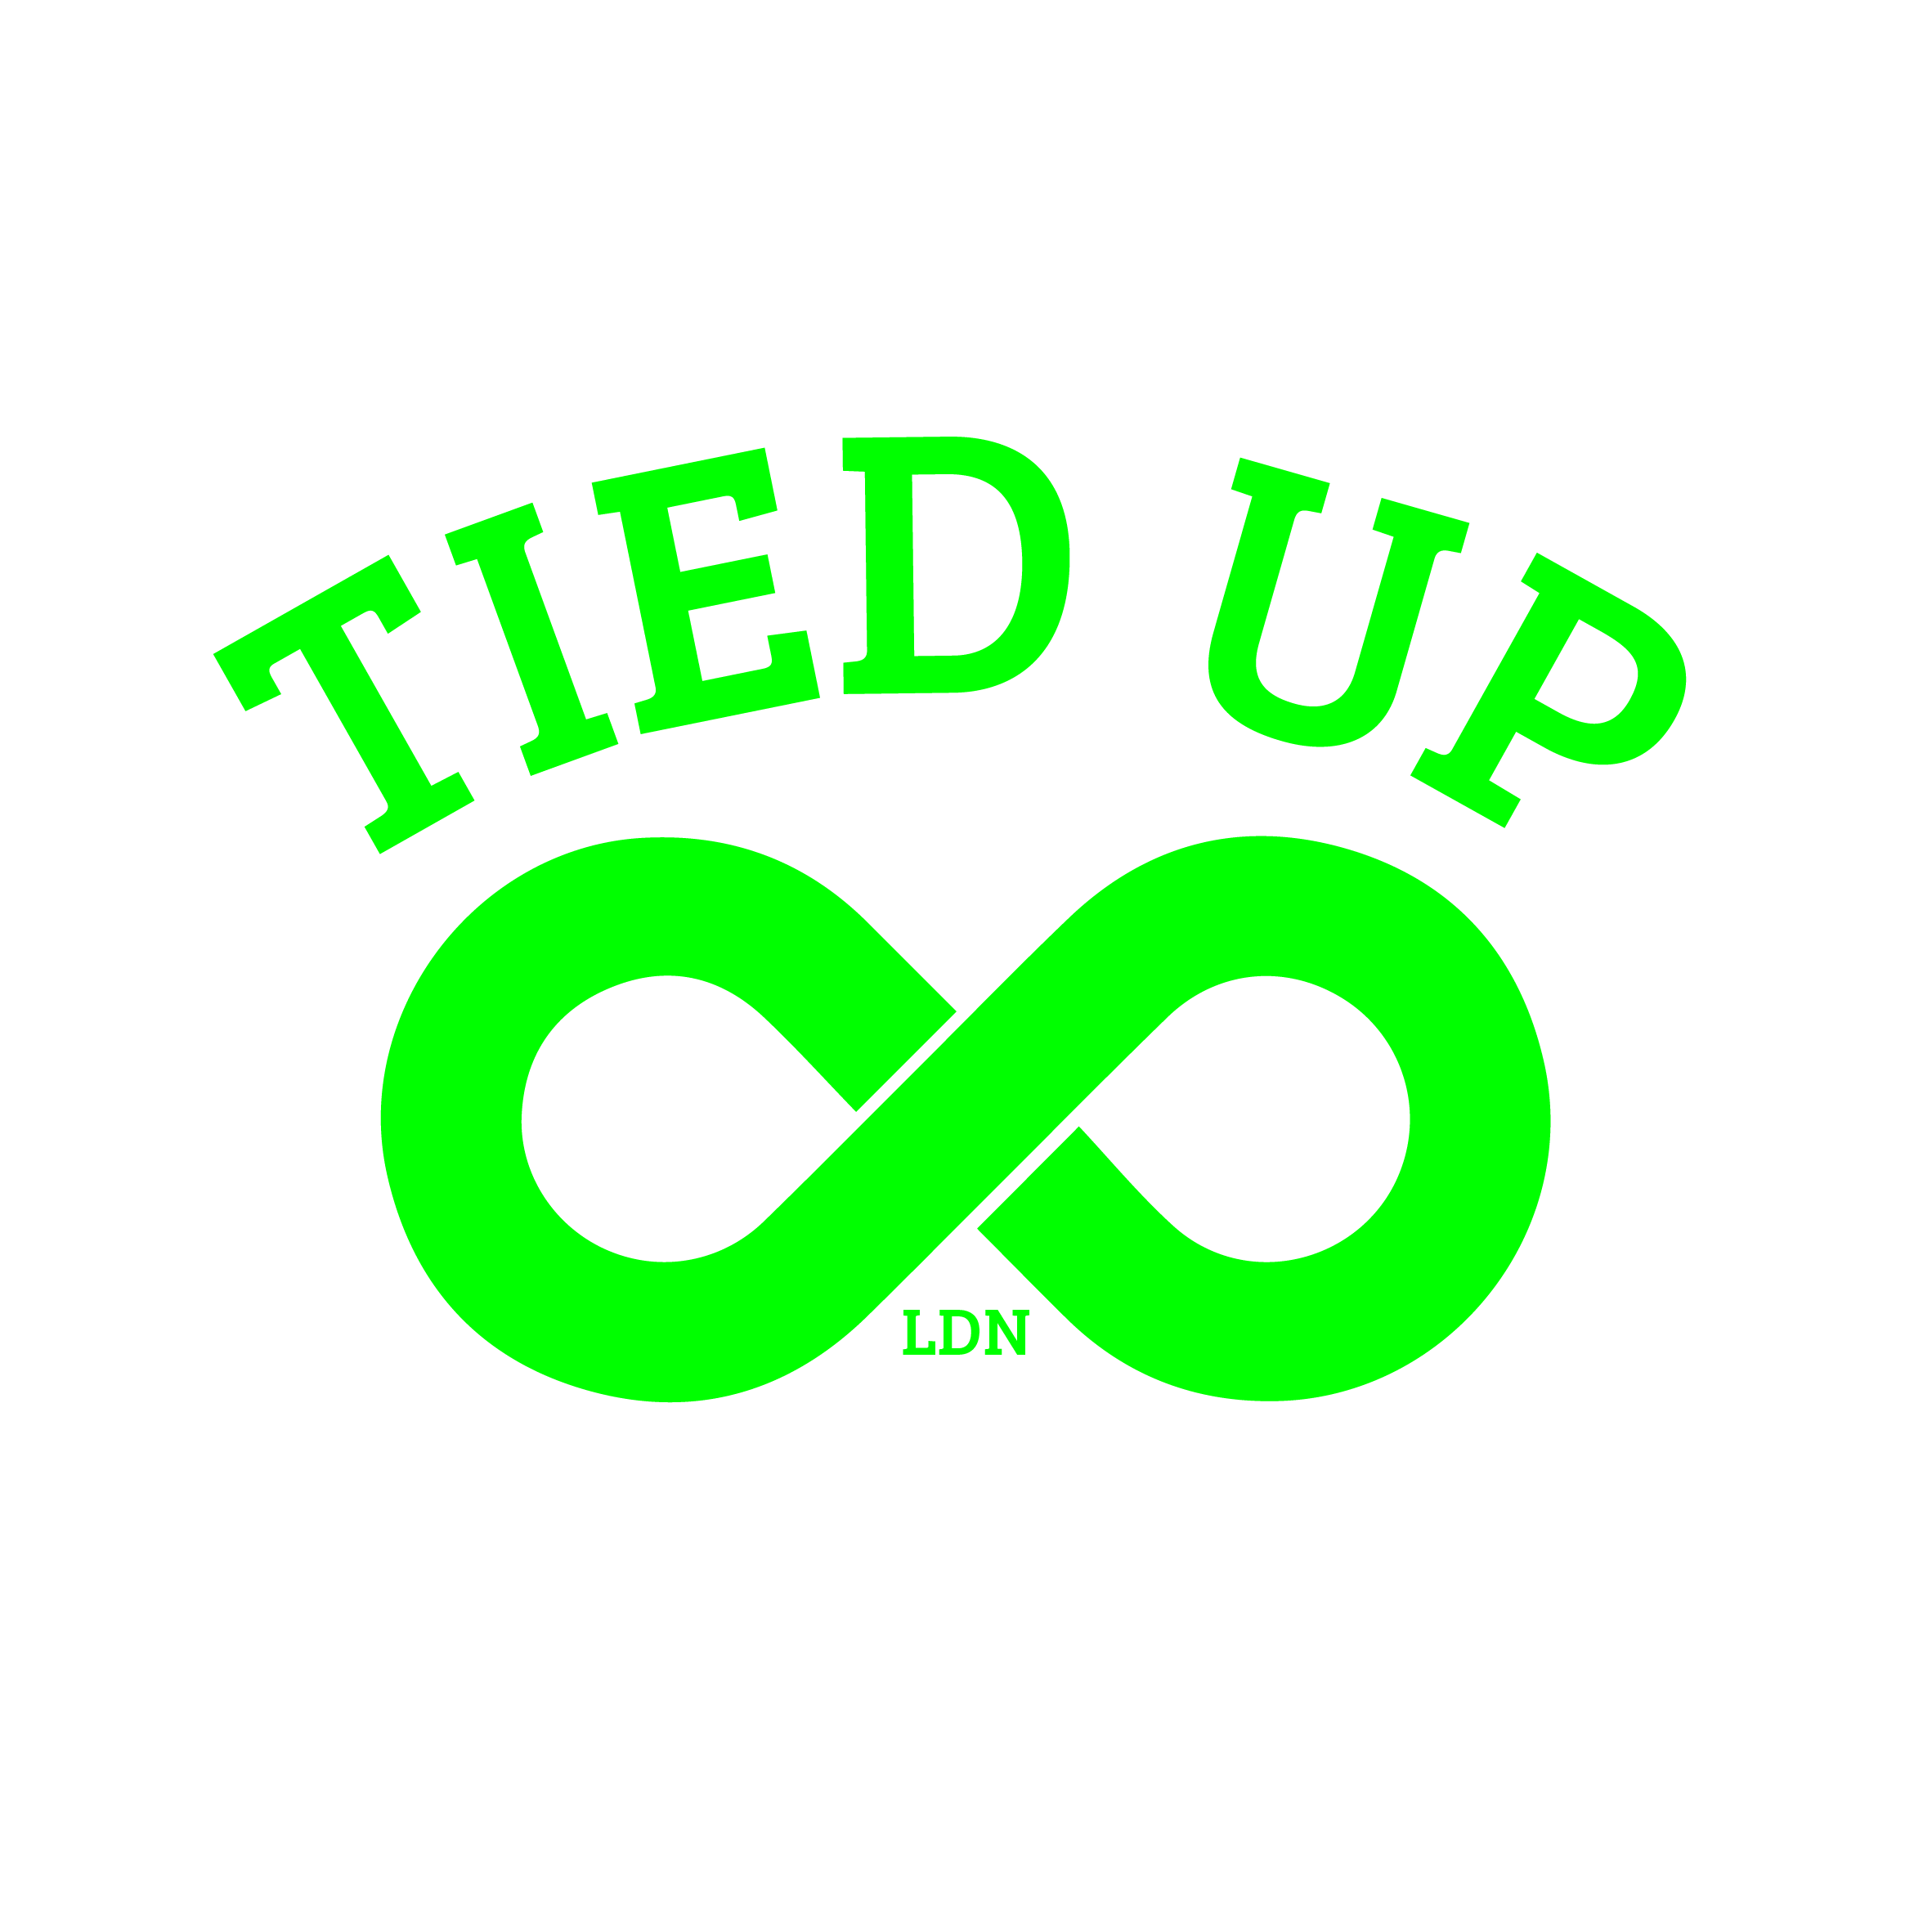 Tied Up LDN logo.png